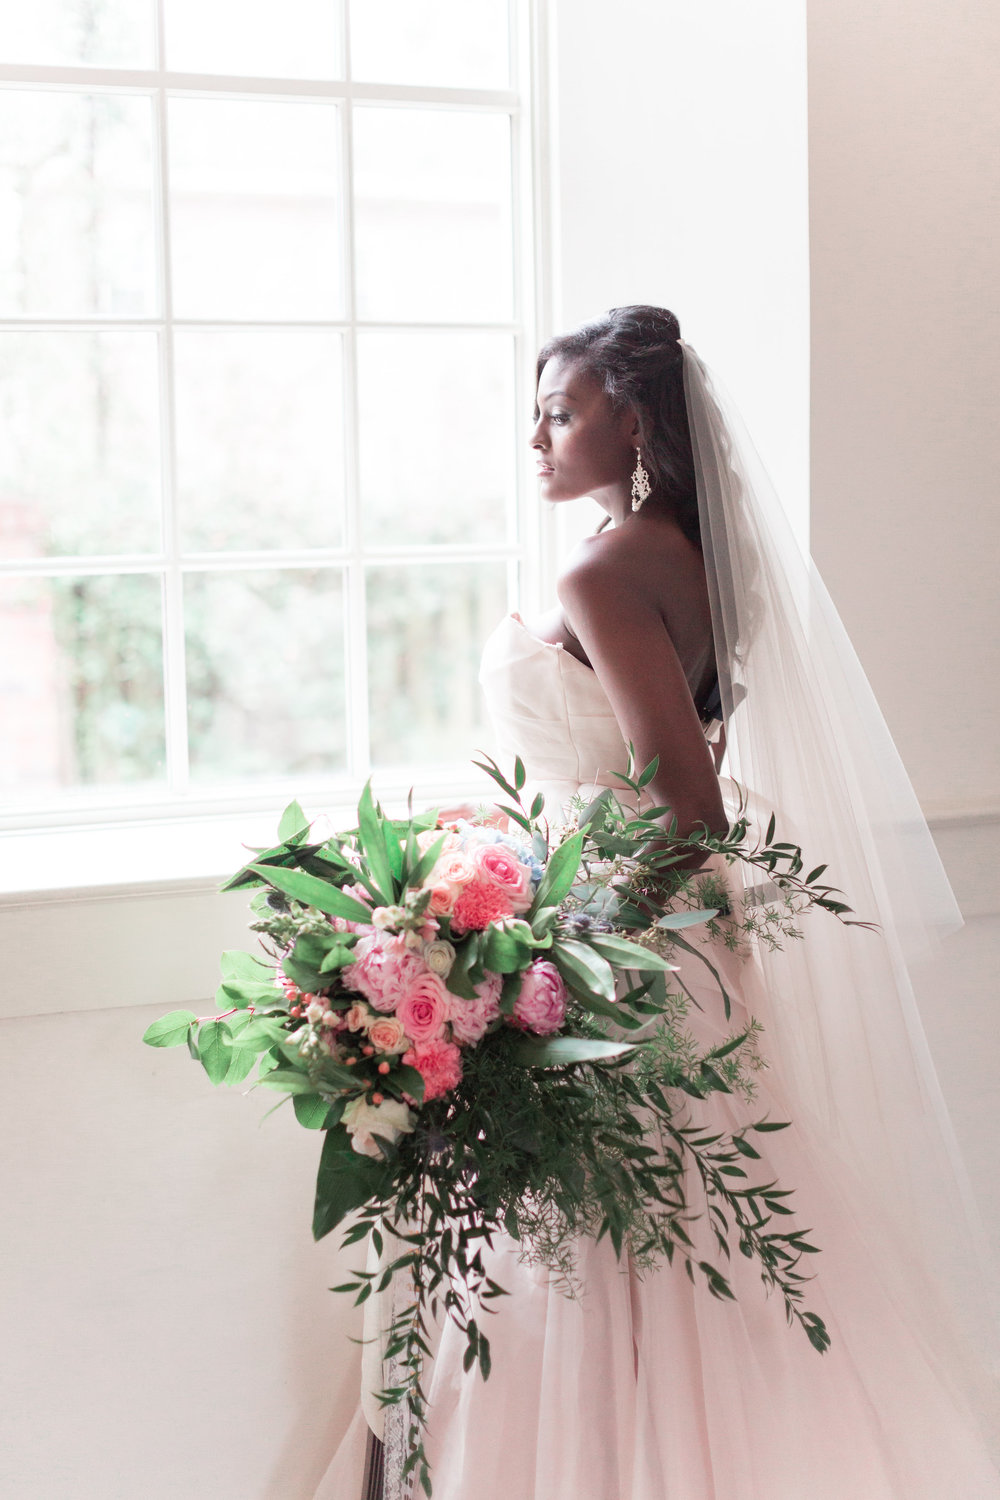 larger-than-life-events-lyndi-j-photography-blush-by-hayley-paige-blush-wedding-dress-blush-mermaid-coleman-hall-wedding-savannah-bridal-boutique-savannah-wedding-dresses-savannah-wedidng-gowns-savannah-event-planner-savannah-bridal-shop-13.jpg